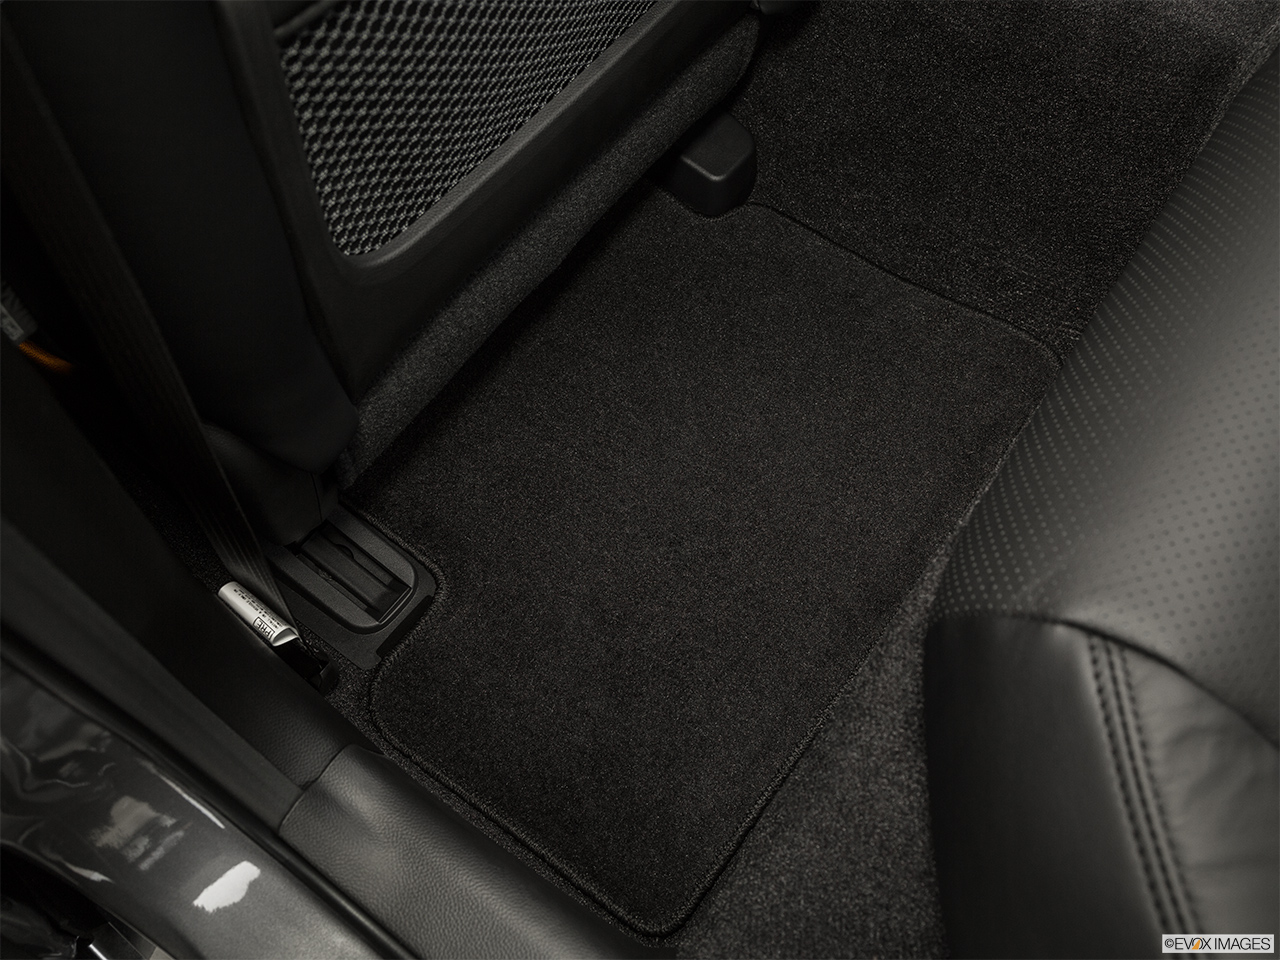 2015 Infiniti Q40 Base Rear driver's side floor mat. Mid-seat level from outside looking in.